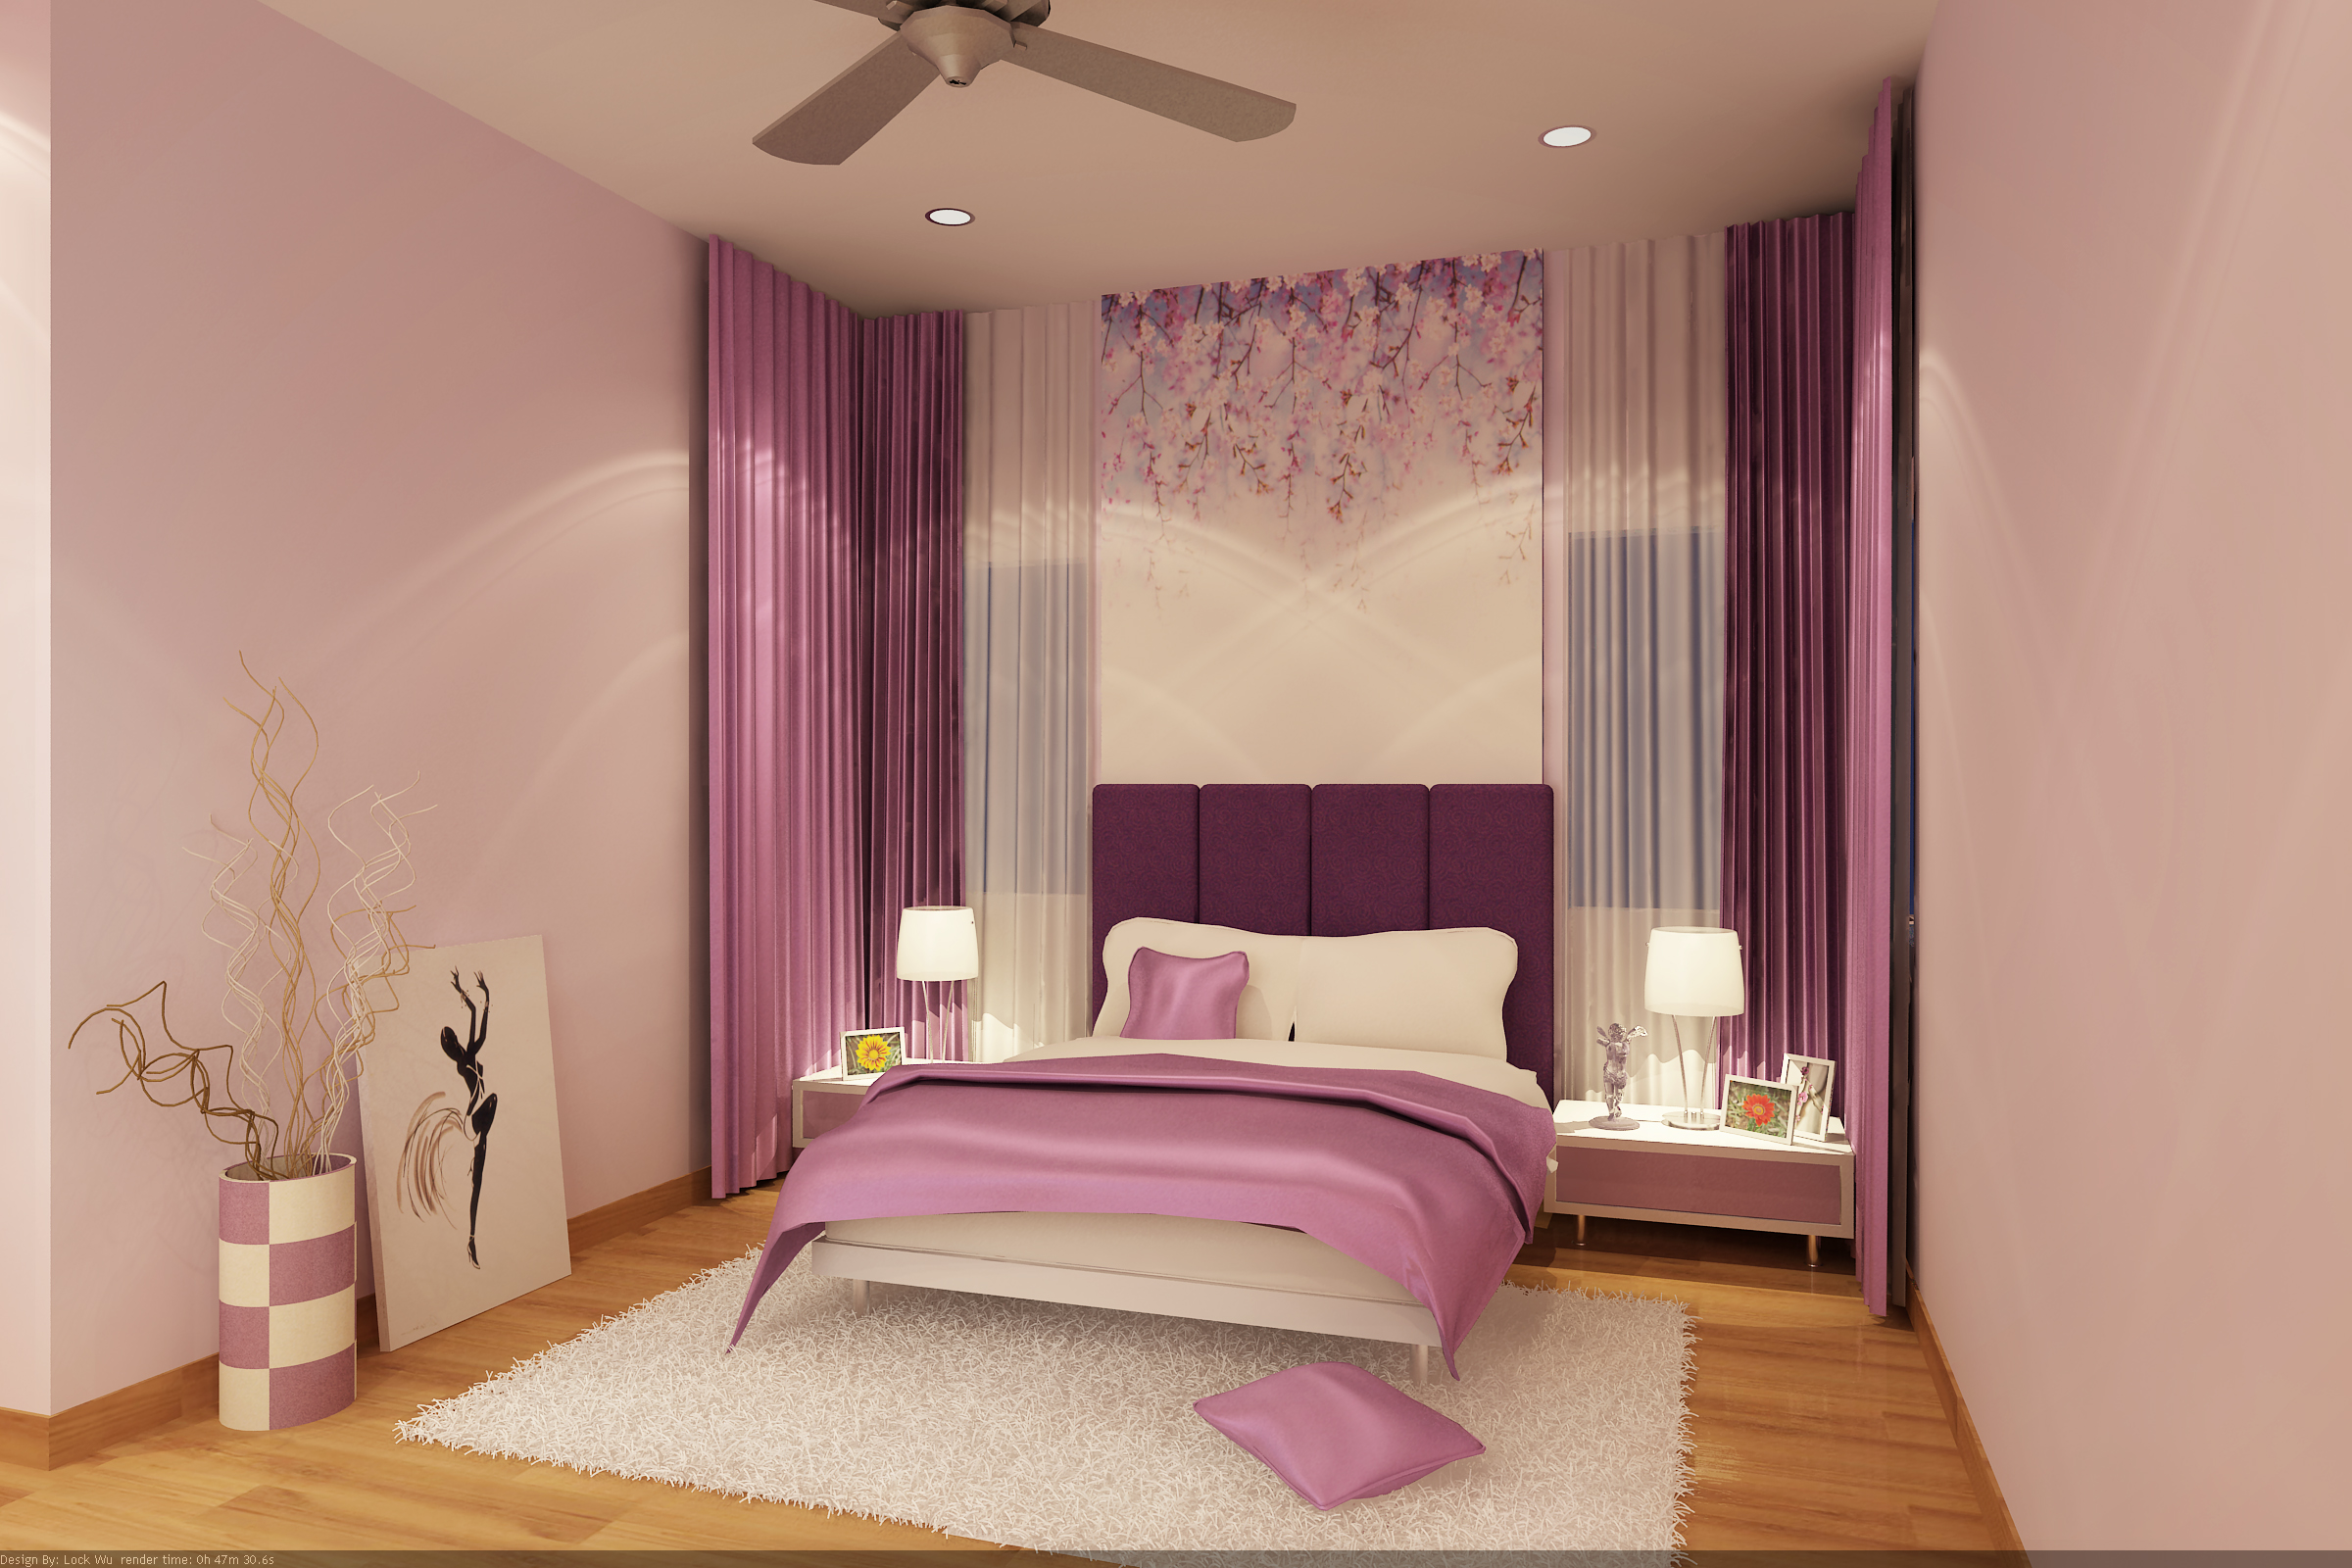 Residential projects by savita menon at for 6 year girl bedroom ideas